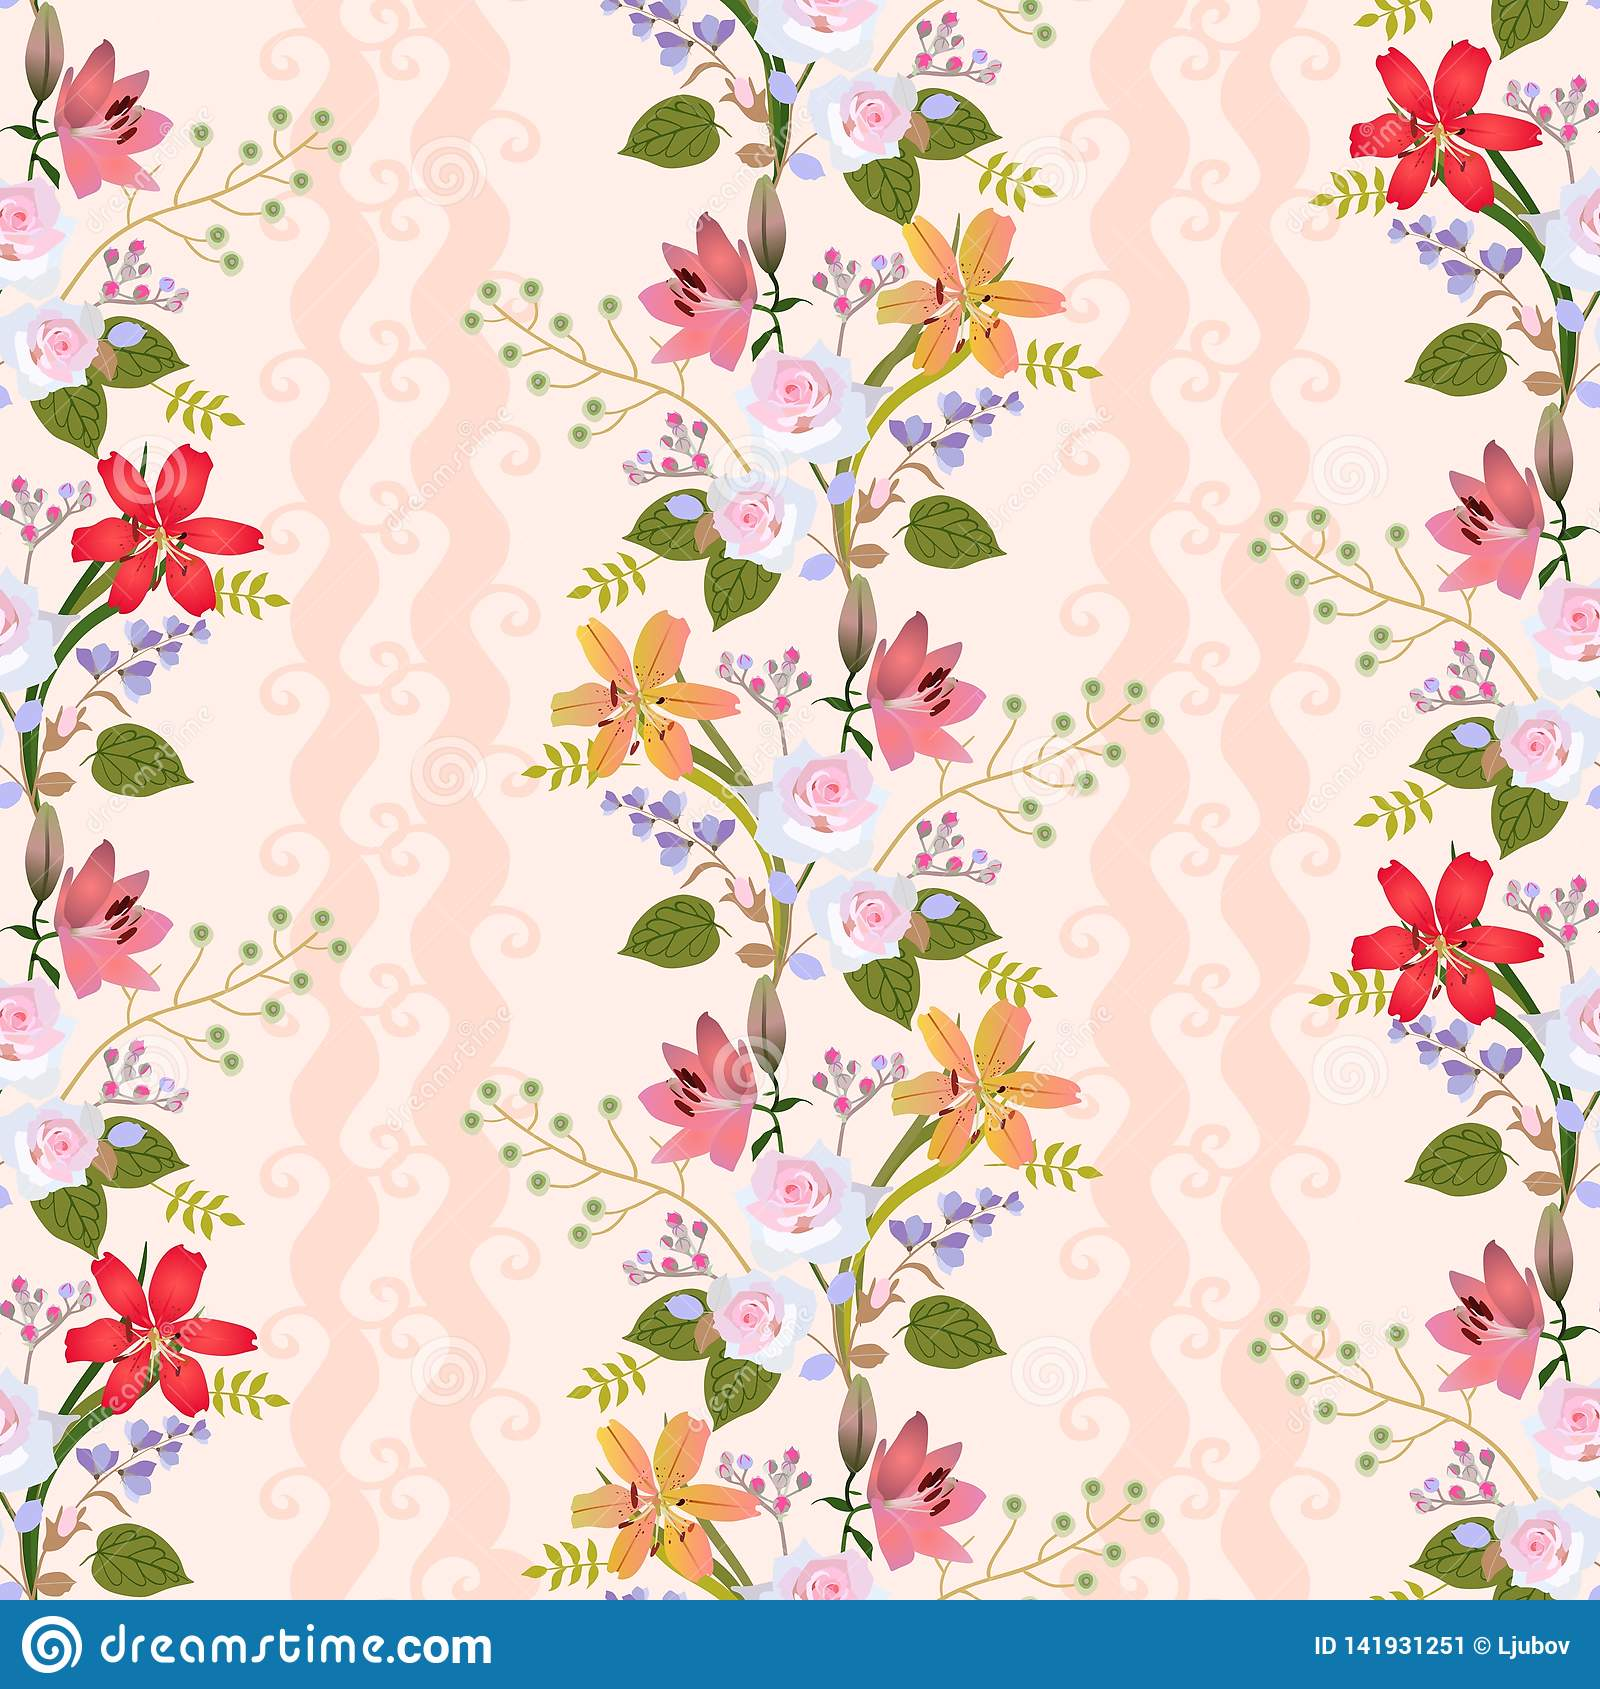 Seamless natural pattern with romantic floral wreath of lilies, roses, bell flowers, buds of spirea and branches with berries